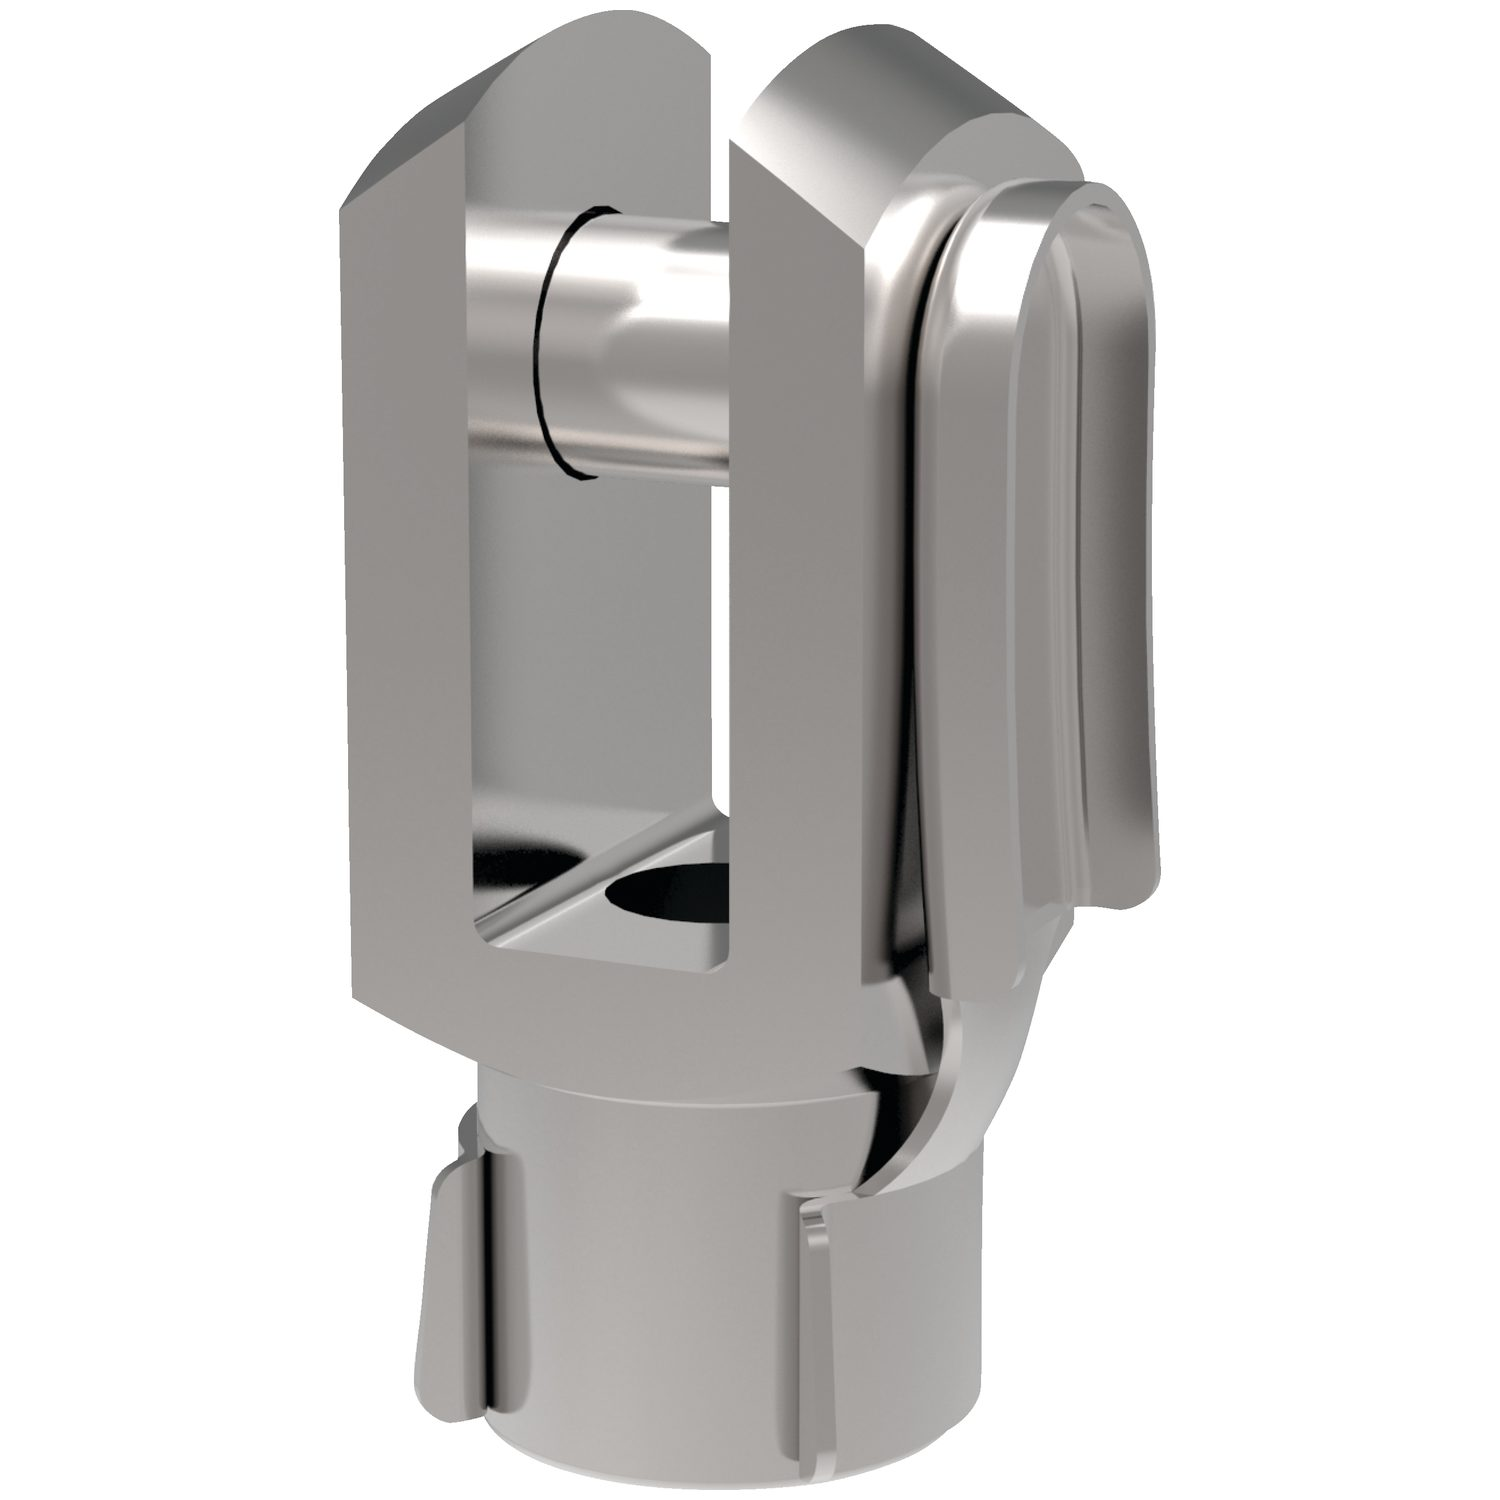 R3387 - Steel Clevis Joints with Retention Clips